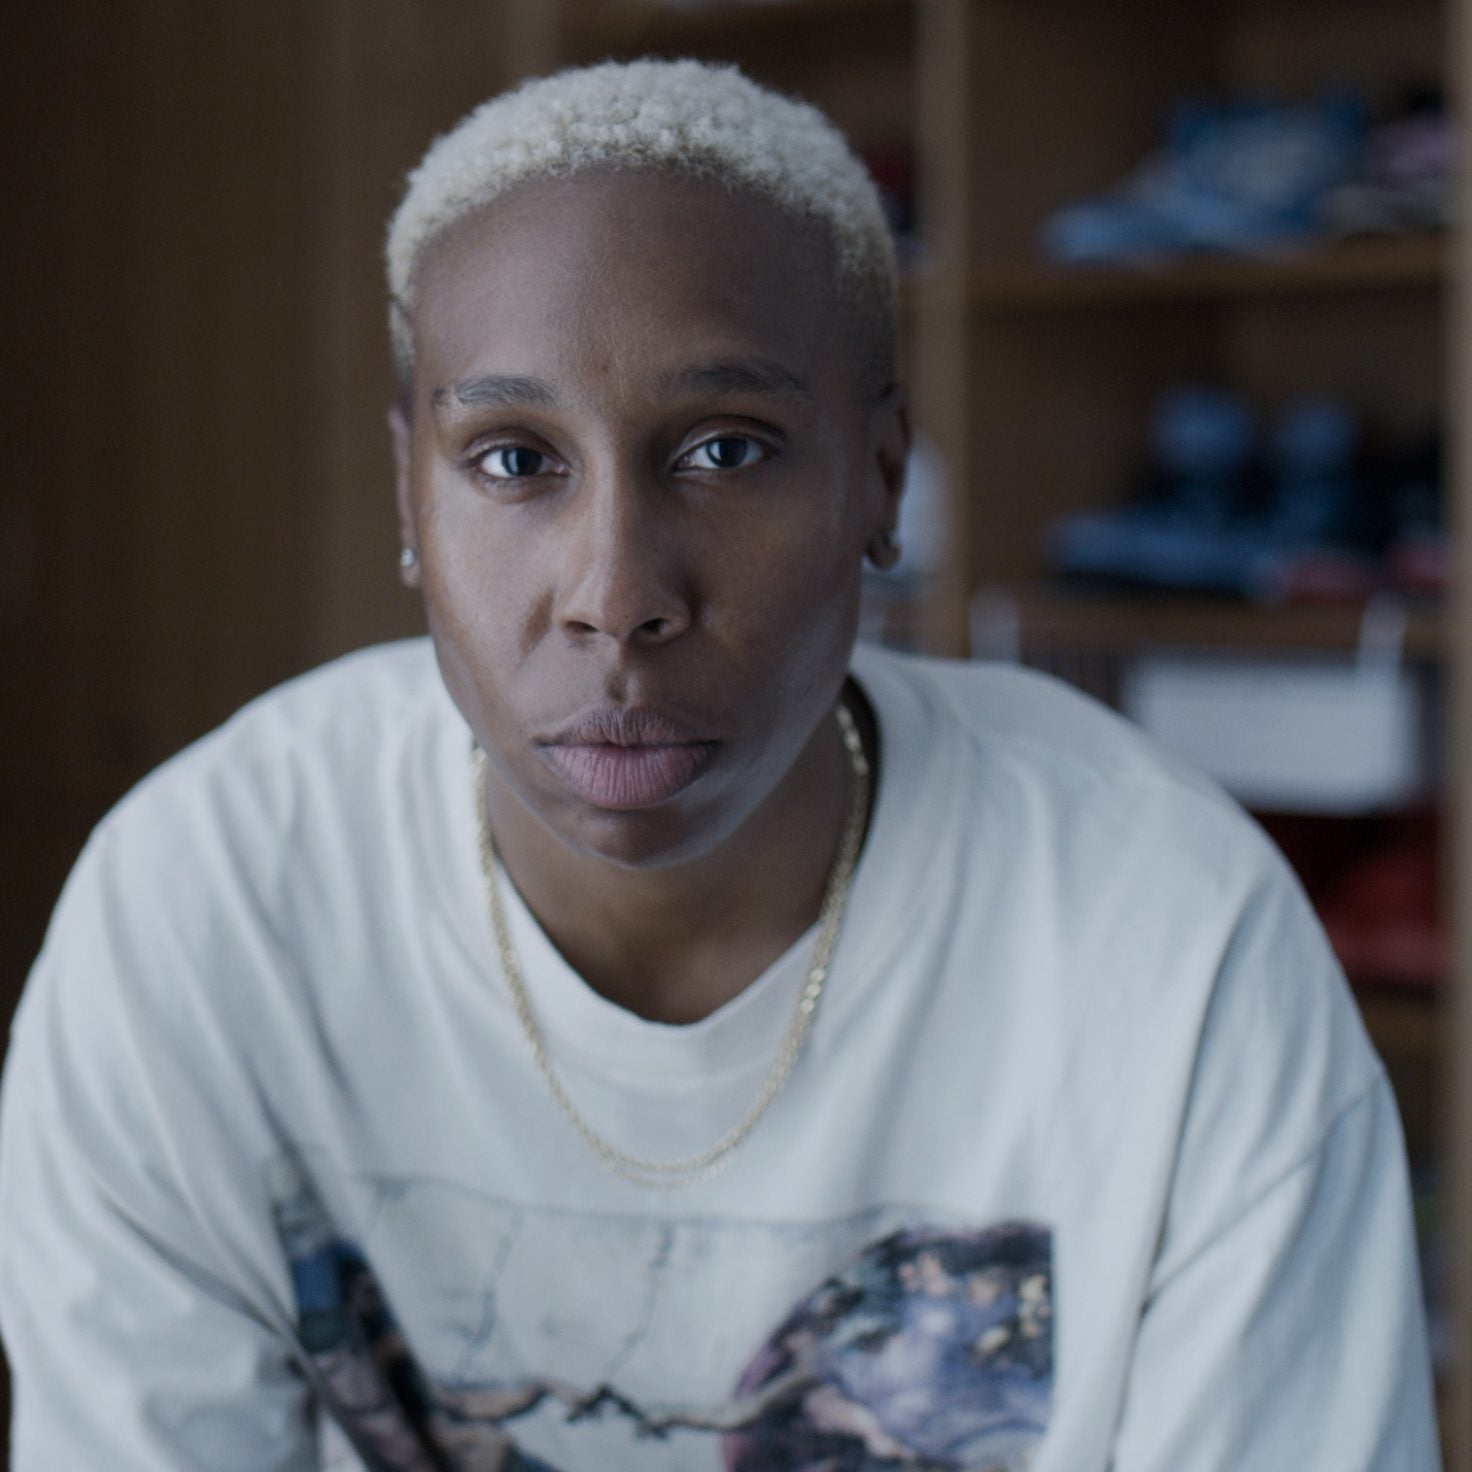 Sneakerhead Lena Waithe Sits Down To Talk About Kicks In New Series